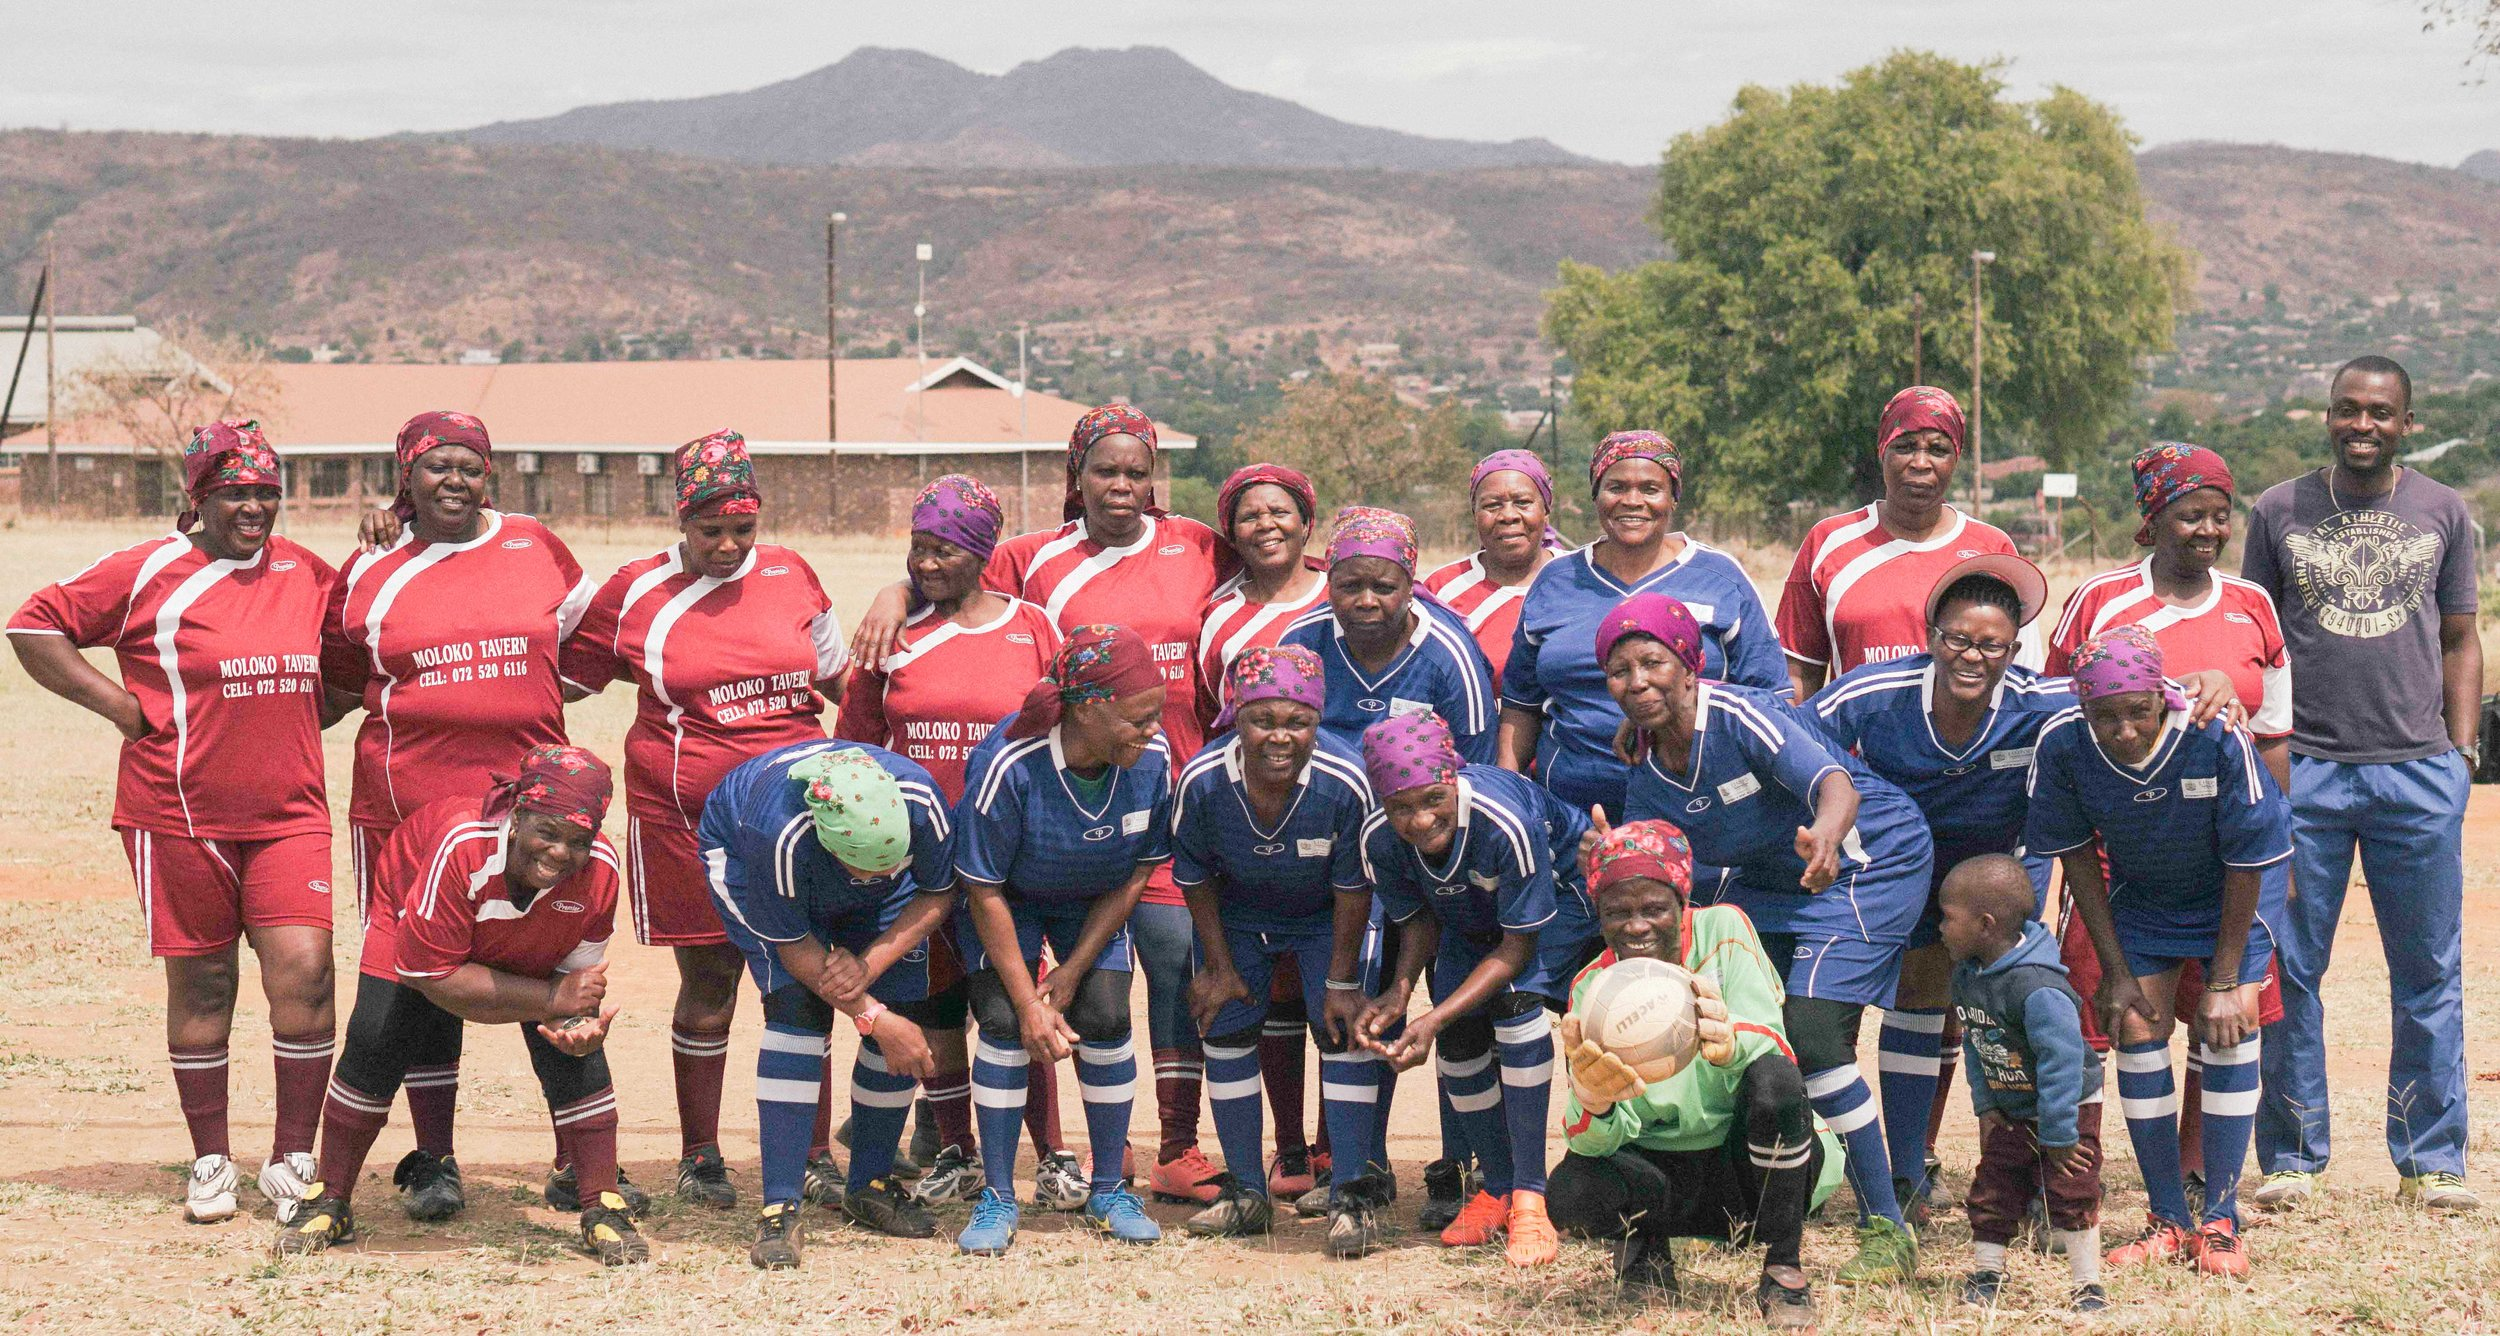 In October 2018, Oldyssey traveled to South Africa to meet and film the South African National Senior Women's Team, Vakhegula Vakhegula